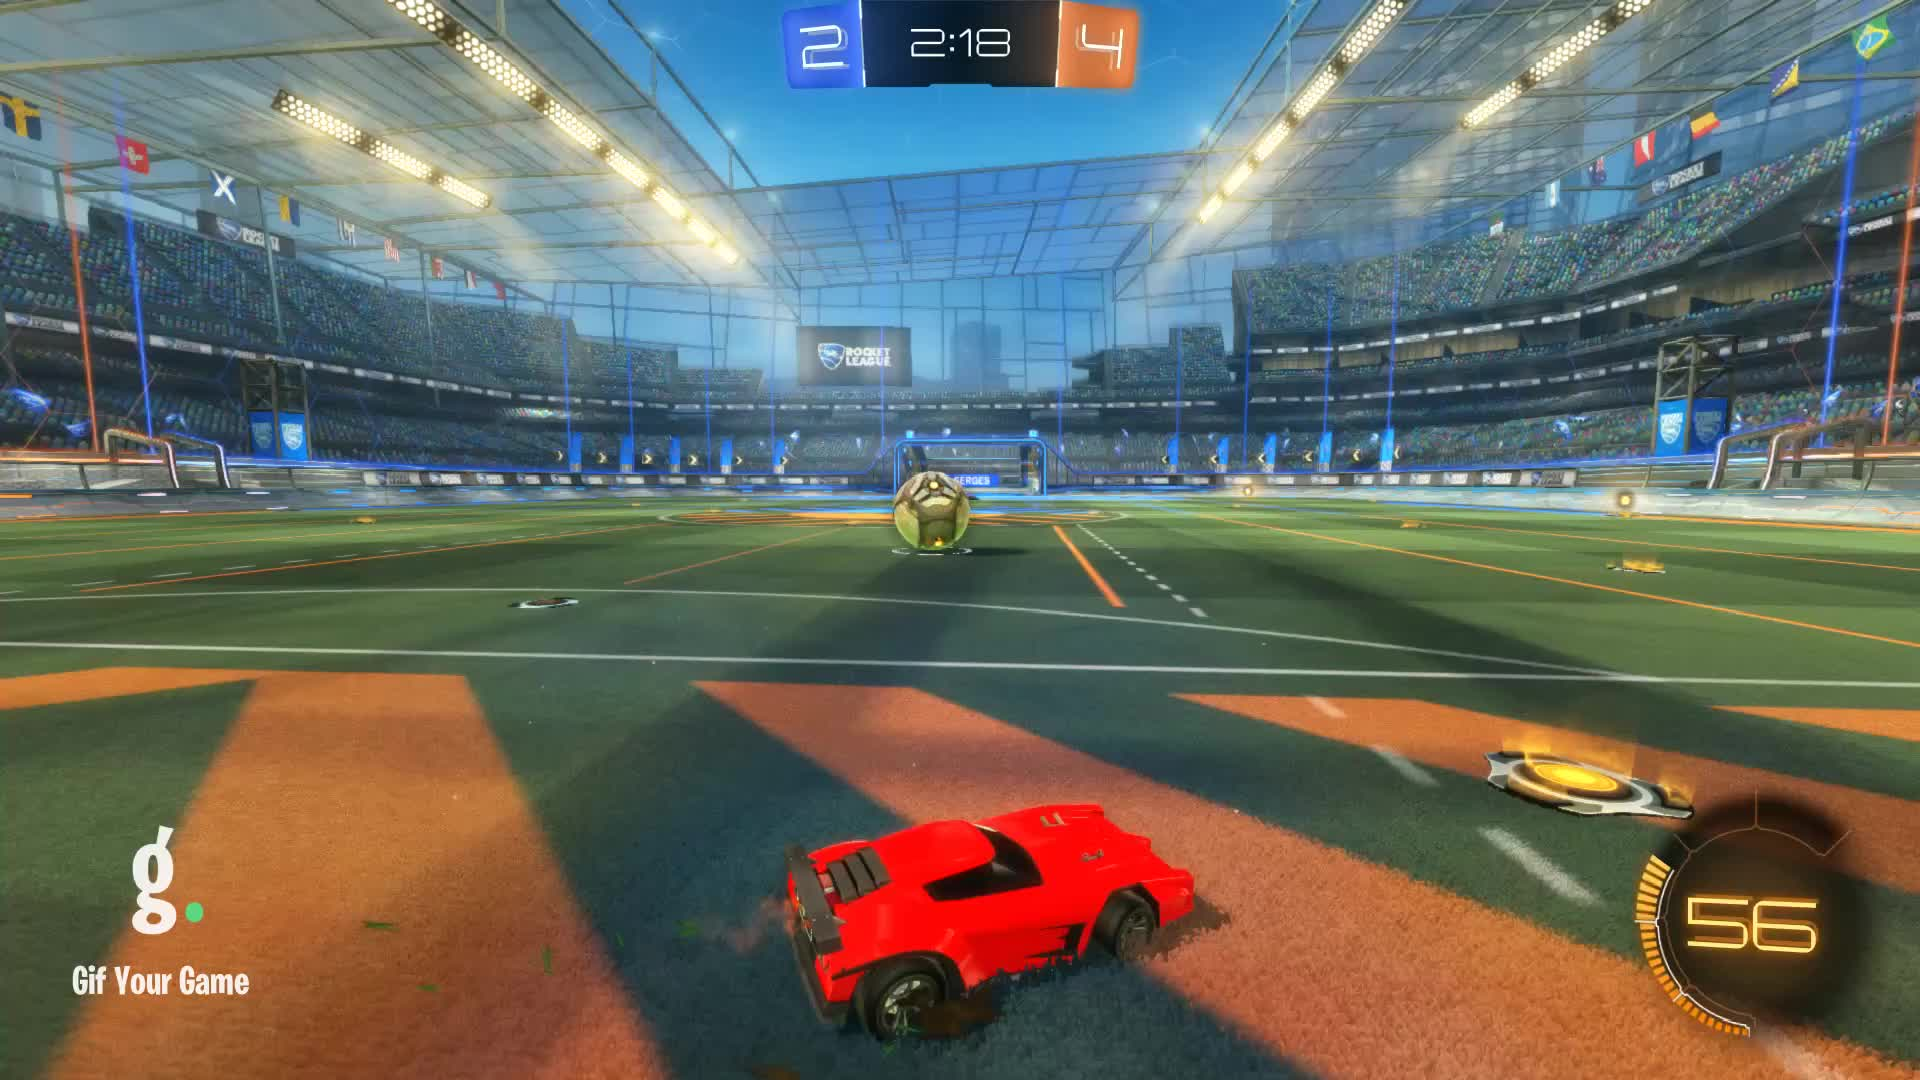 Gif Your Game, GifYourGame, Goal, Rocket League, RocketLeague, Seecretxs - New To PC, Goal 7: Seecretxs - New To PC GIFs